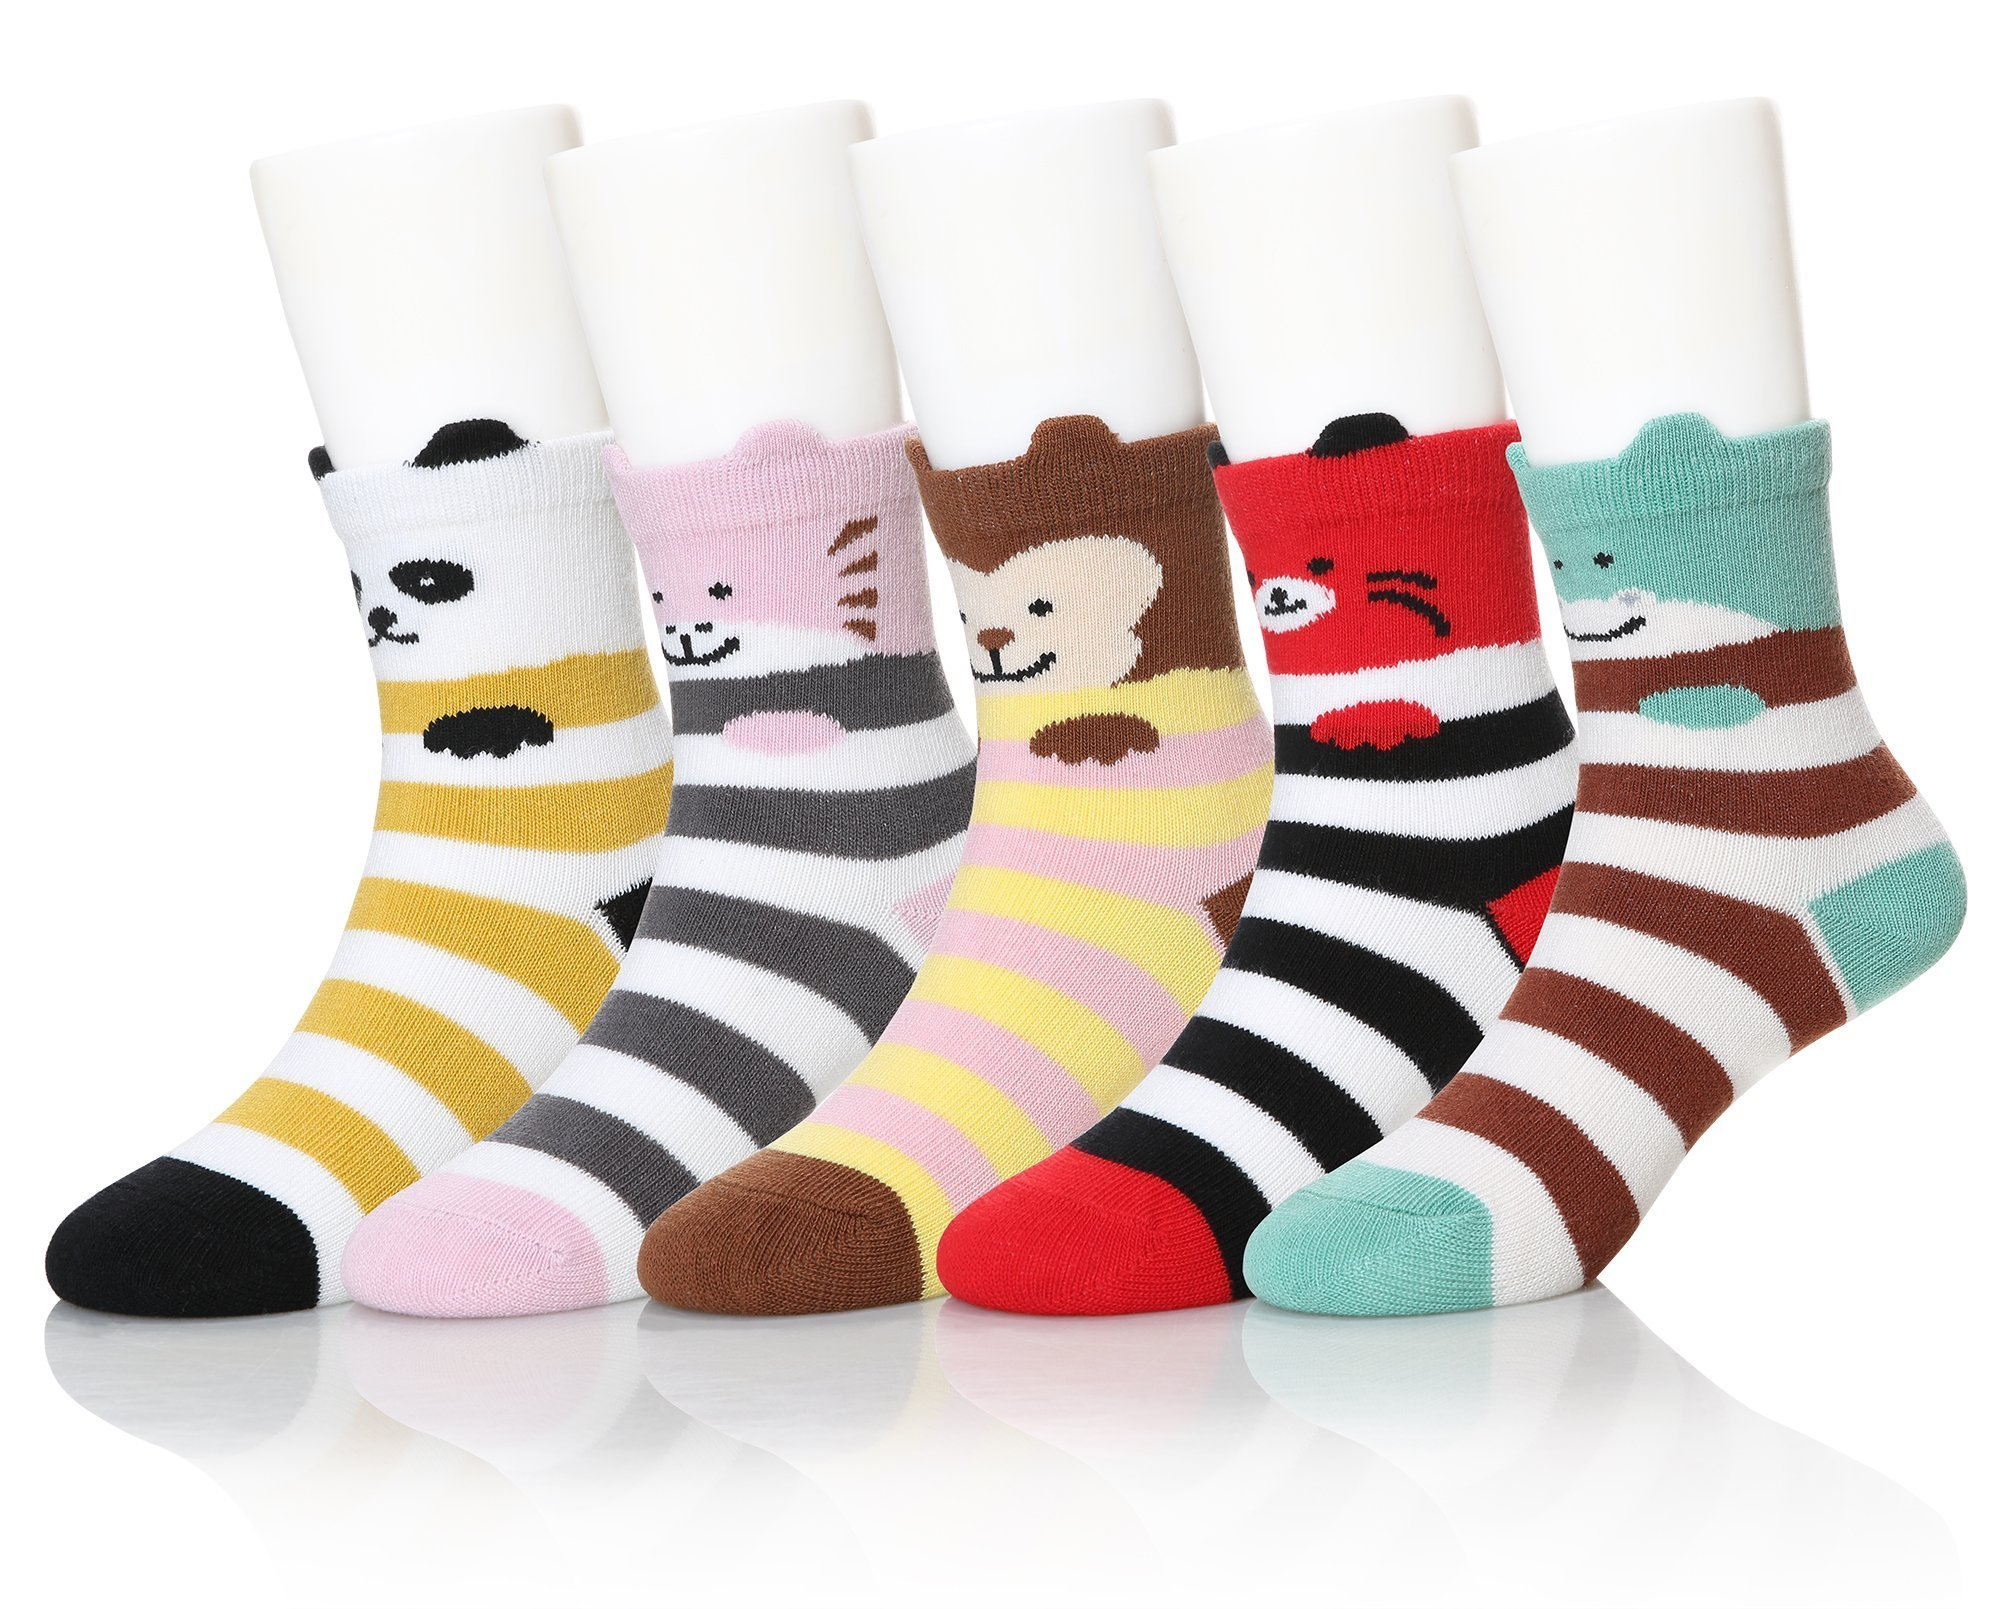 SEEYAN Kids Novelty Cute Cartoon Animals Cotton Ankle Baby Boys Girls Toddler Breathable Socks 5 Pairs (Striped Animal, 3-5)